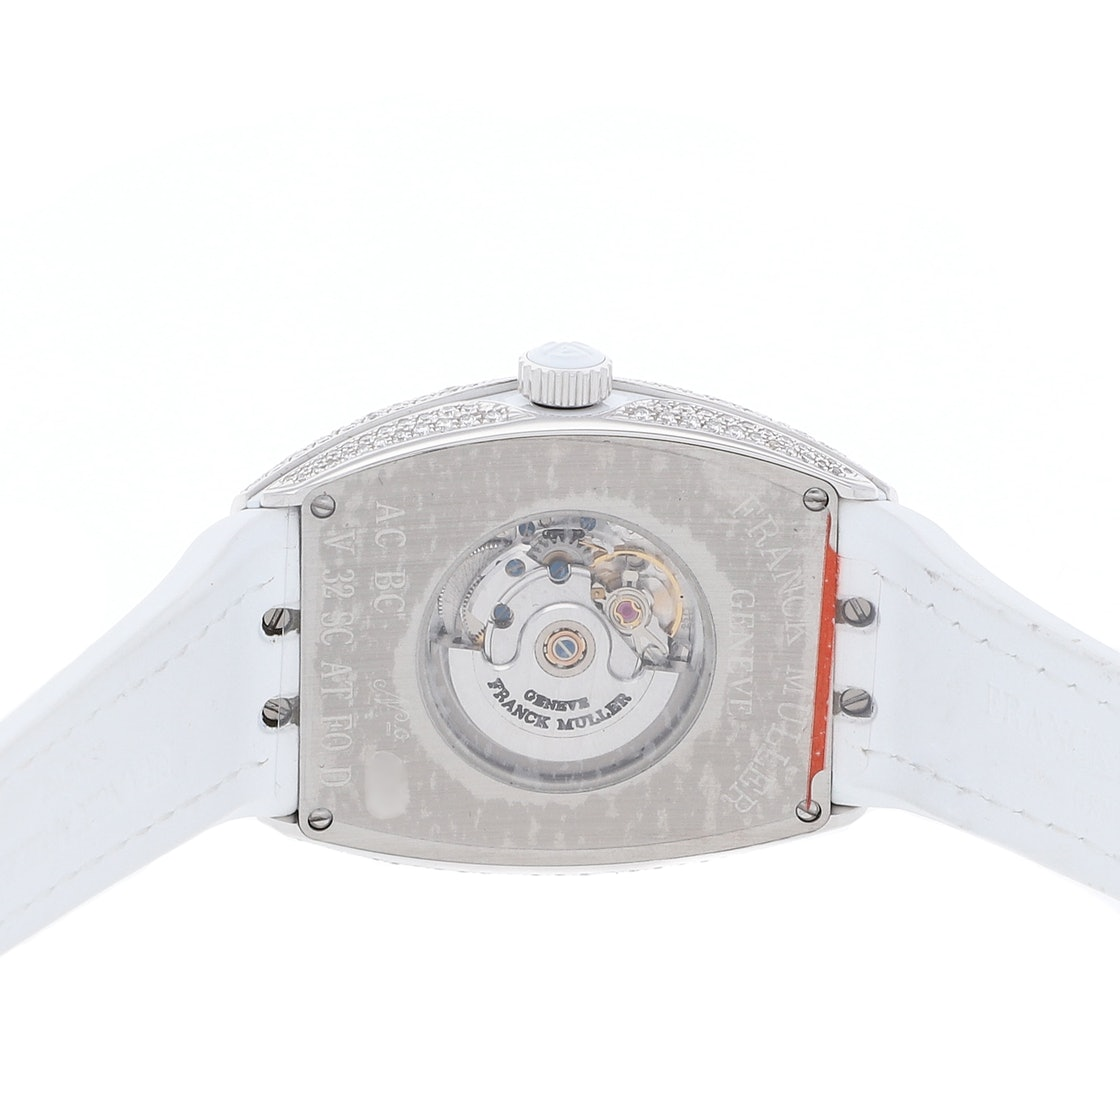 Franck Muller Vanguard Lady 32 V SC AT AC FO D BC